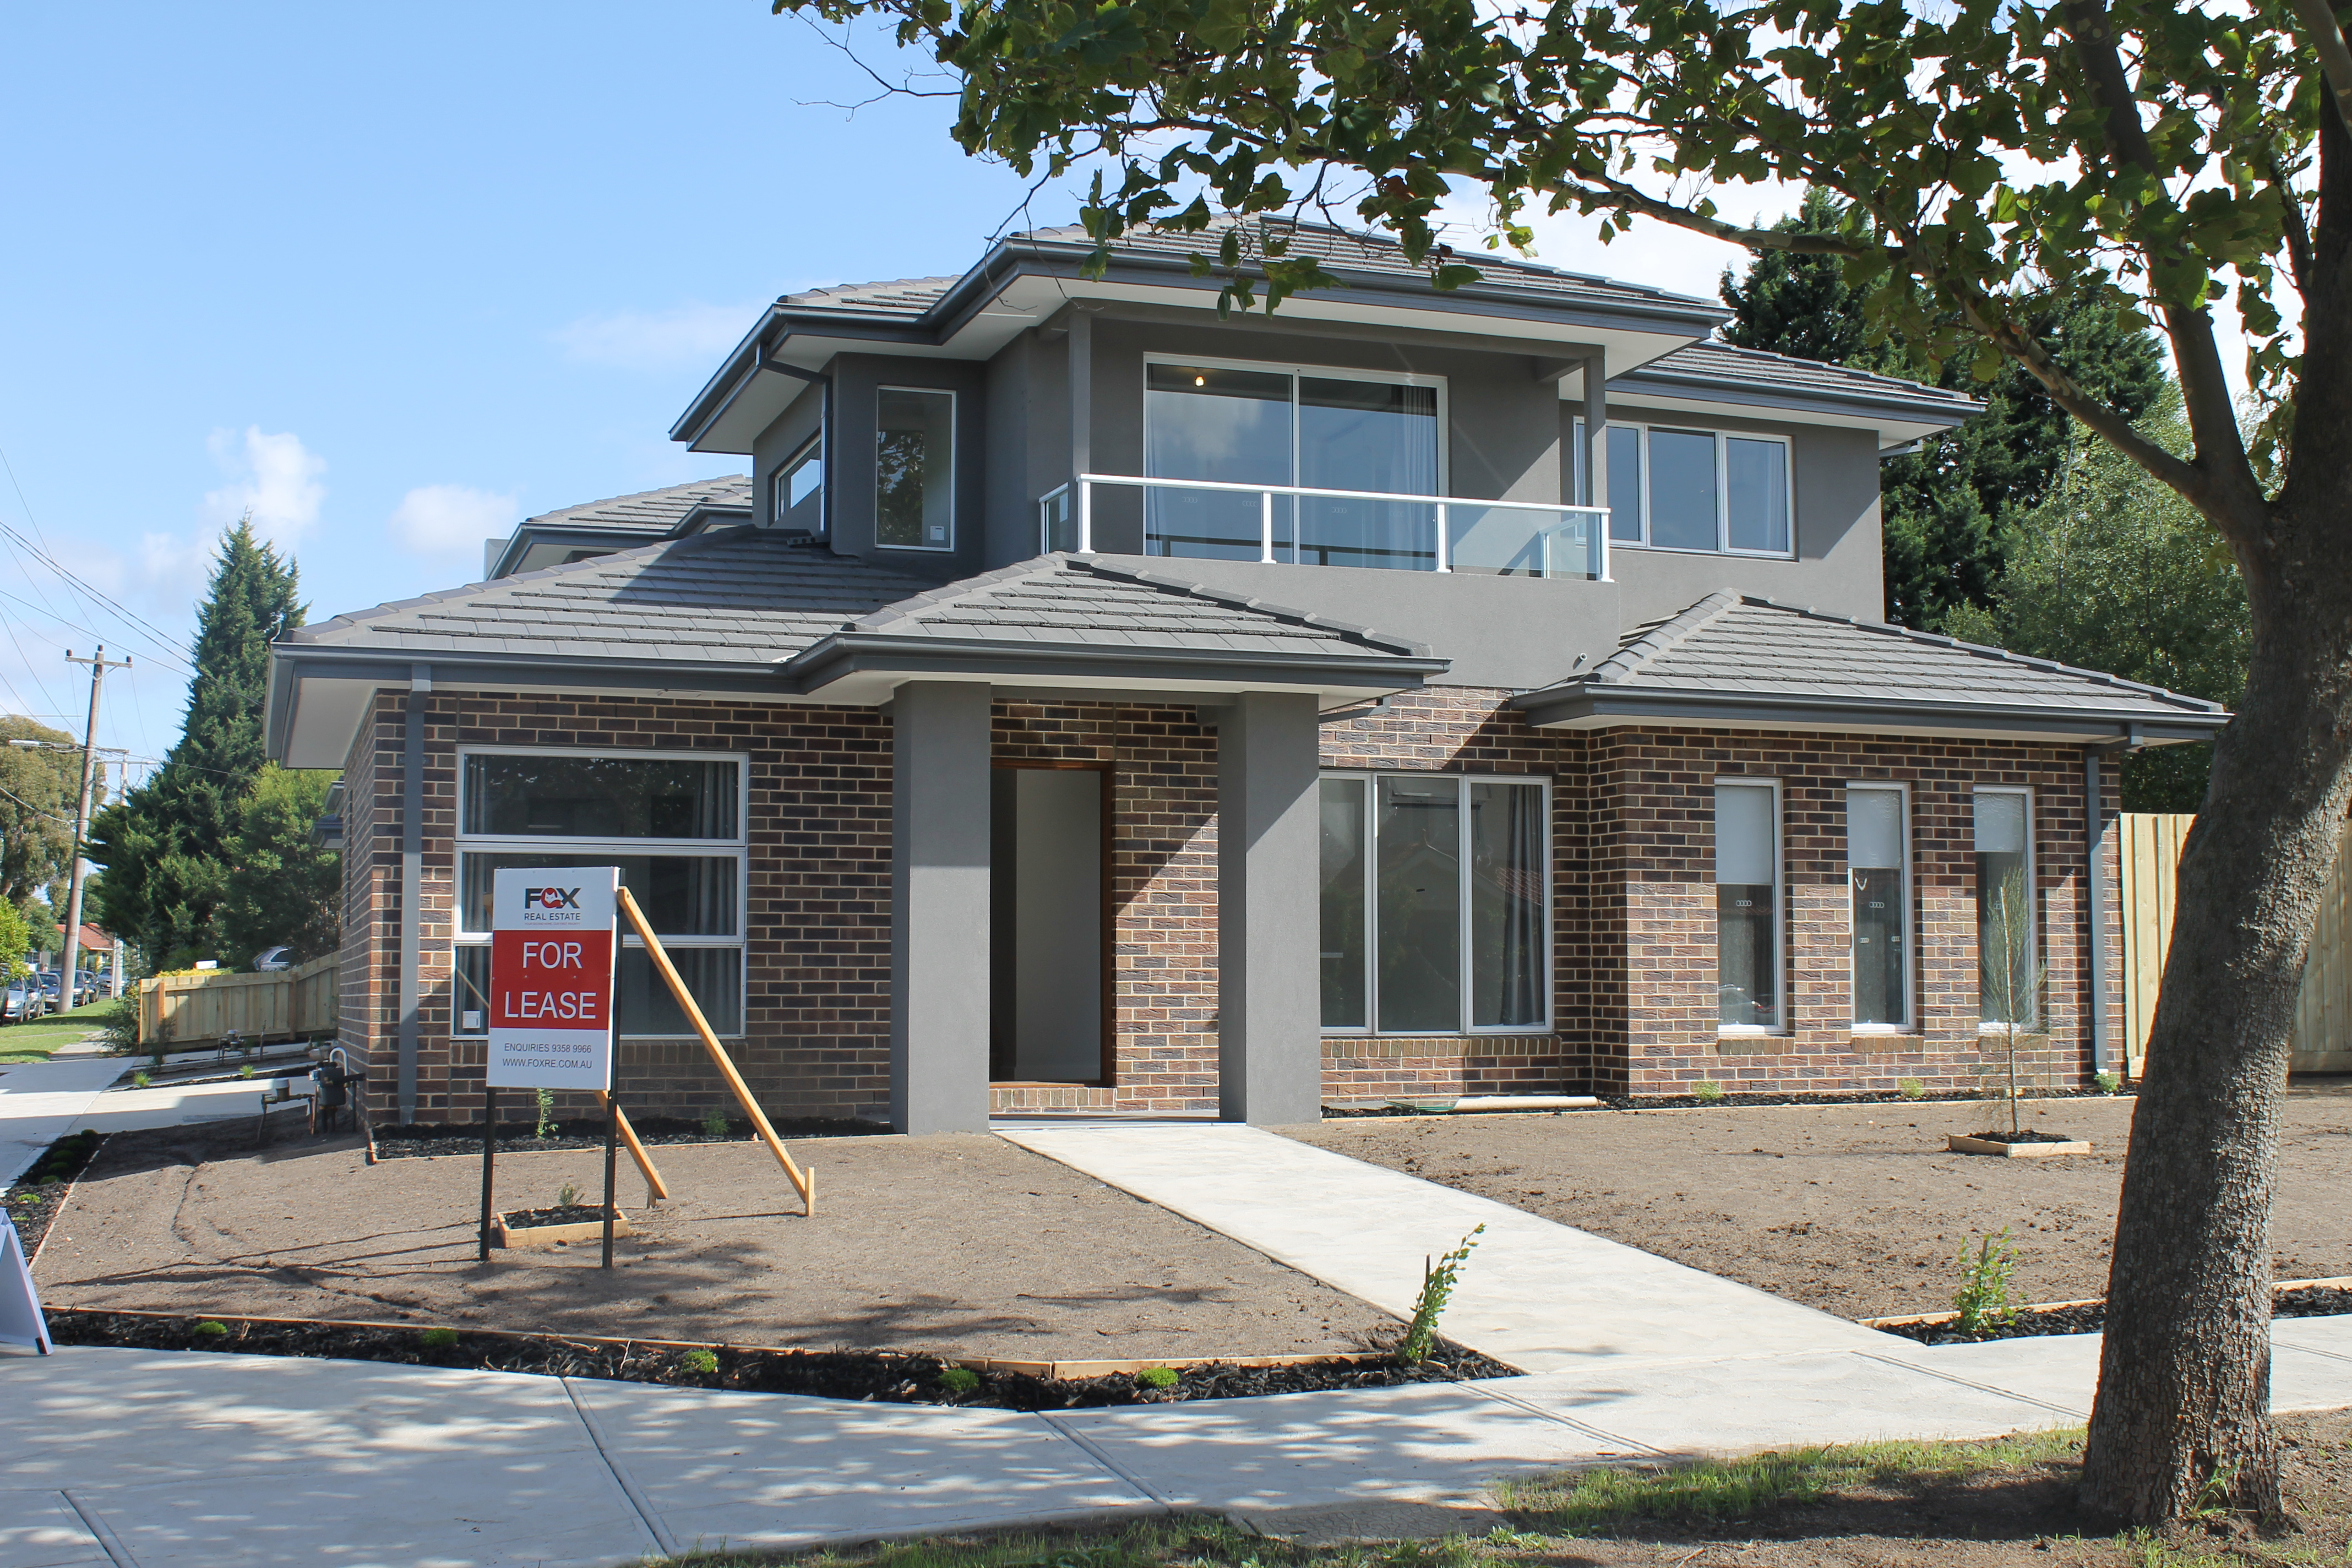 Only 2 Brand New Townhouses Left for lease